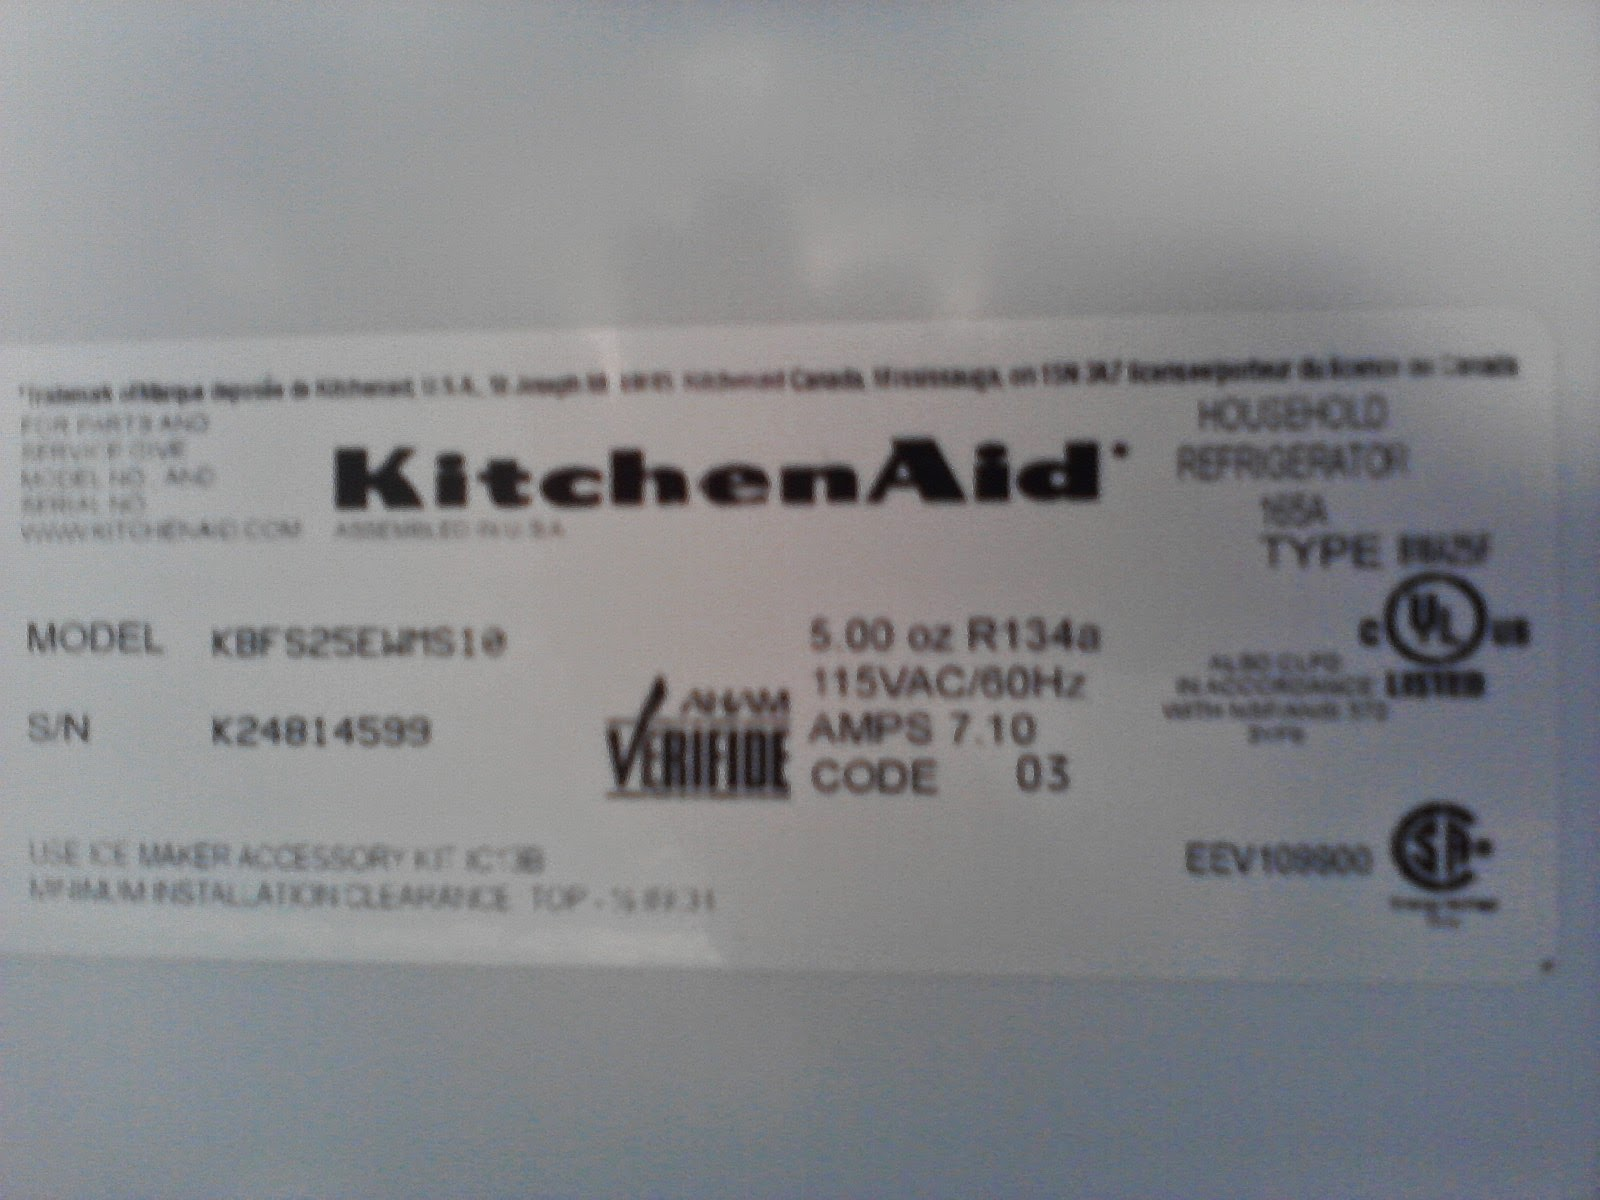 Kitchenaid Dishwasher Model Numbers the w.l may company blog: kelly's korner - appliance parts buying 101